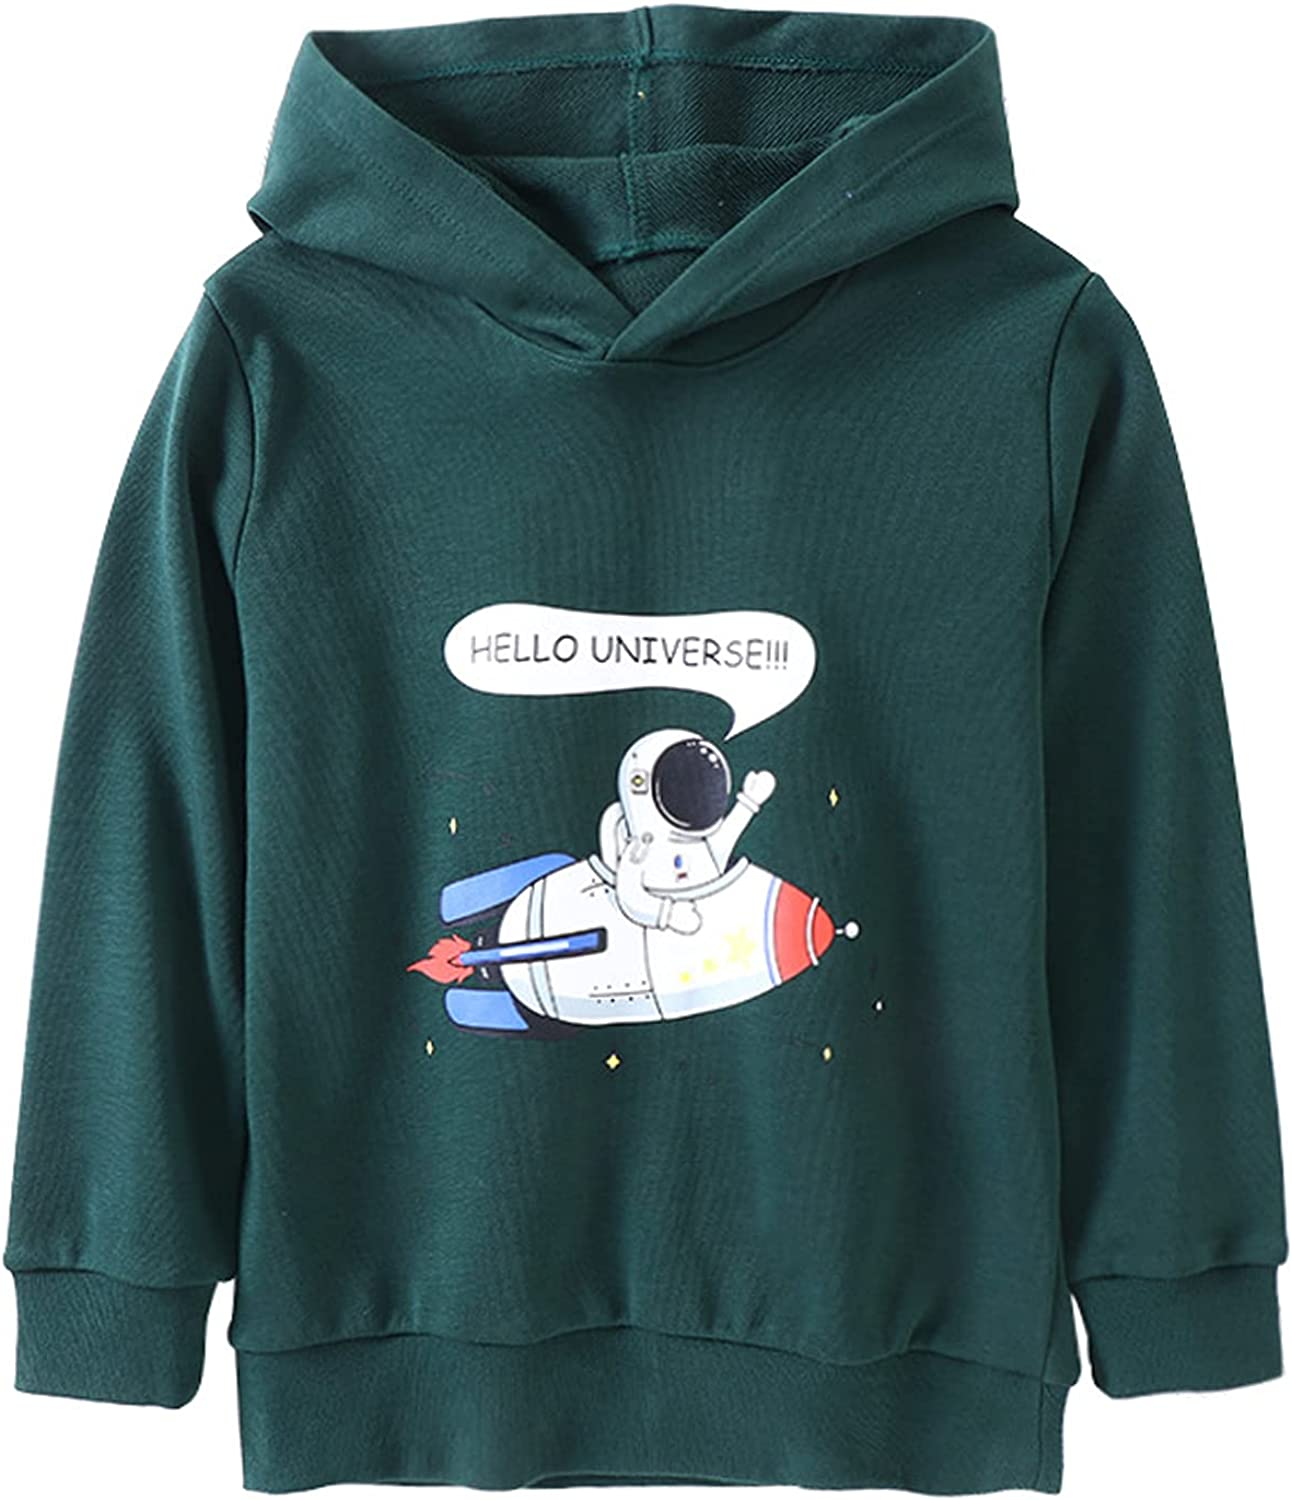 BonjourMrsMr Unisex Boys Sweatshirt Cotton Hoodie Sweater Casual Long Sleeve Pullover for Toddler